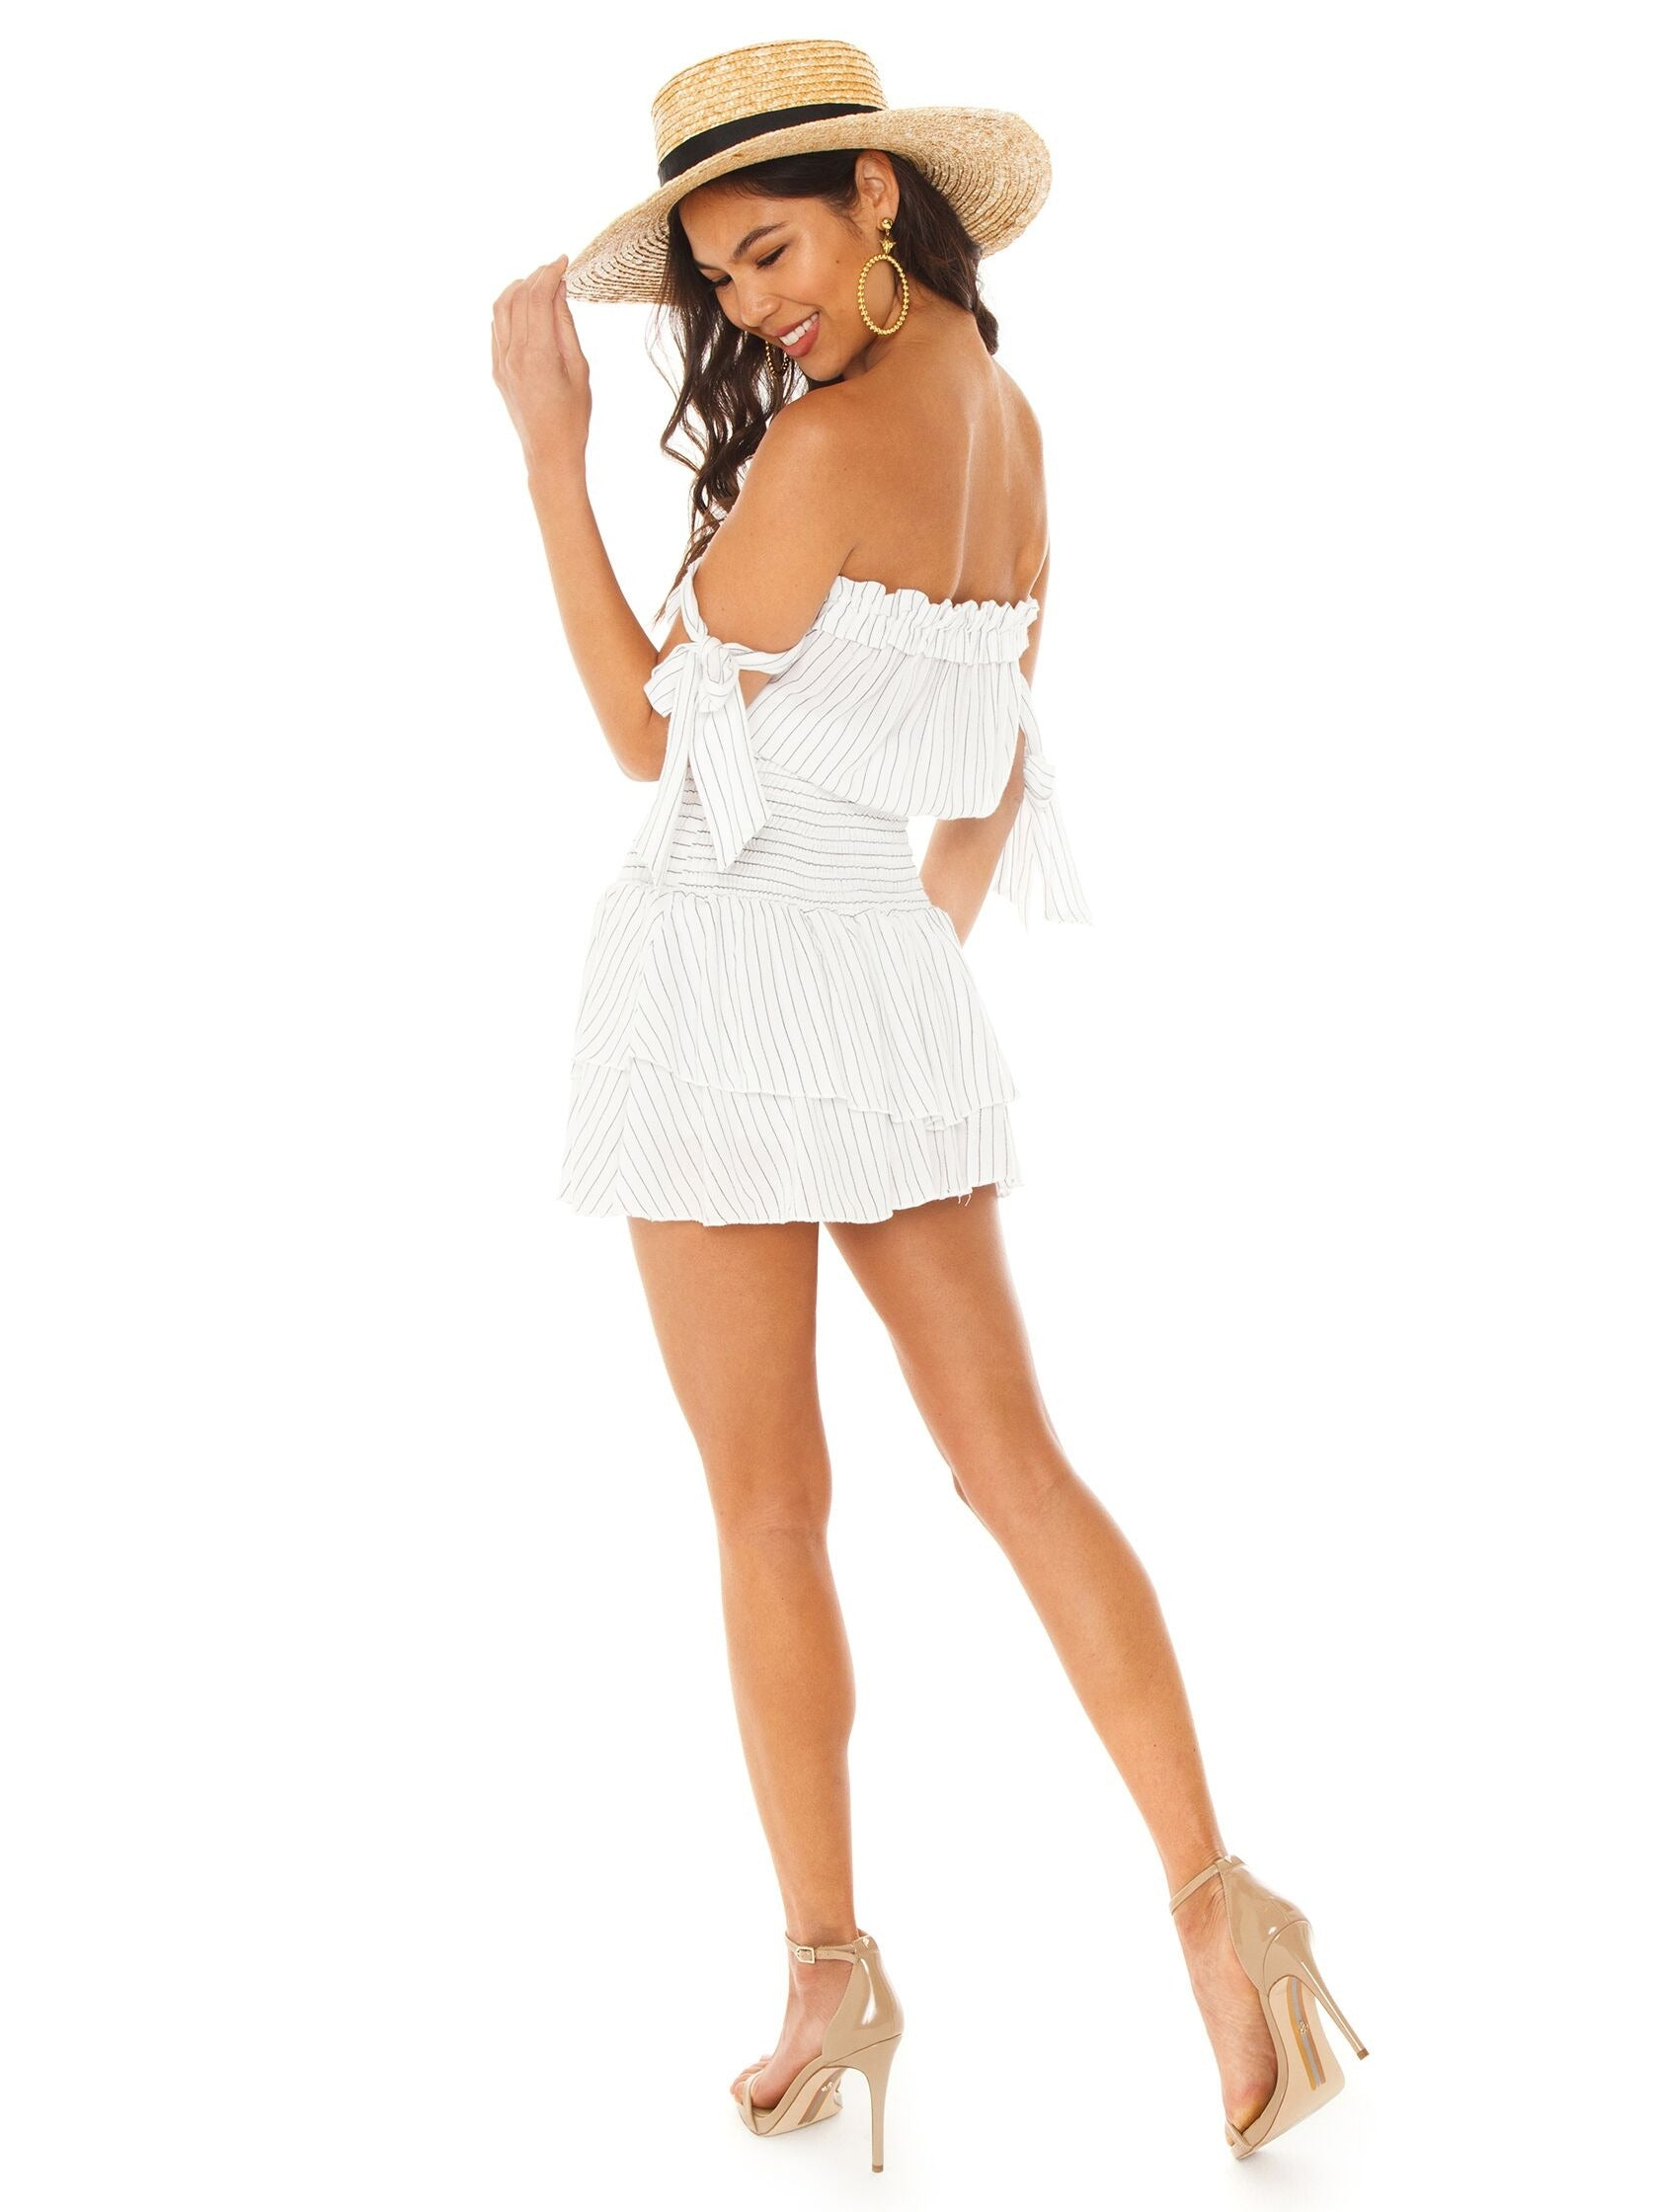 Women wearing a romper rental from Blue Life called Ballerina Romper